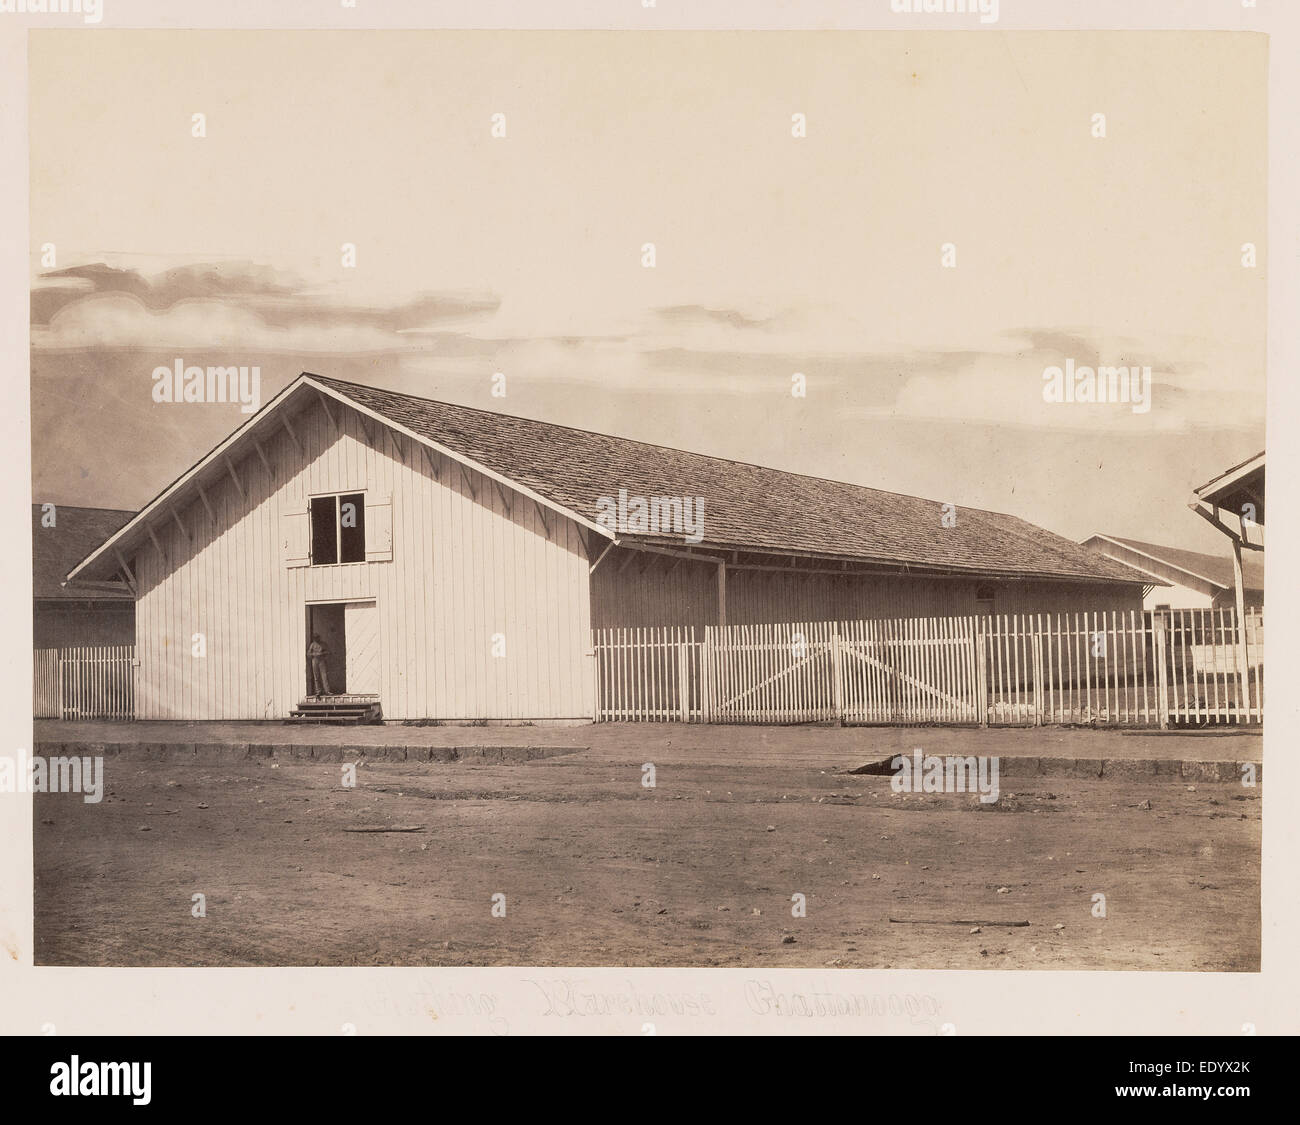 [Clothing Warehouse, Chattanooga]; George N. Barnard, American, 1819 - 1902; negative about 1864; print 1865 - Stock Image